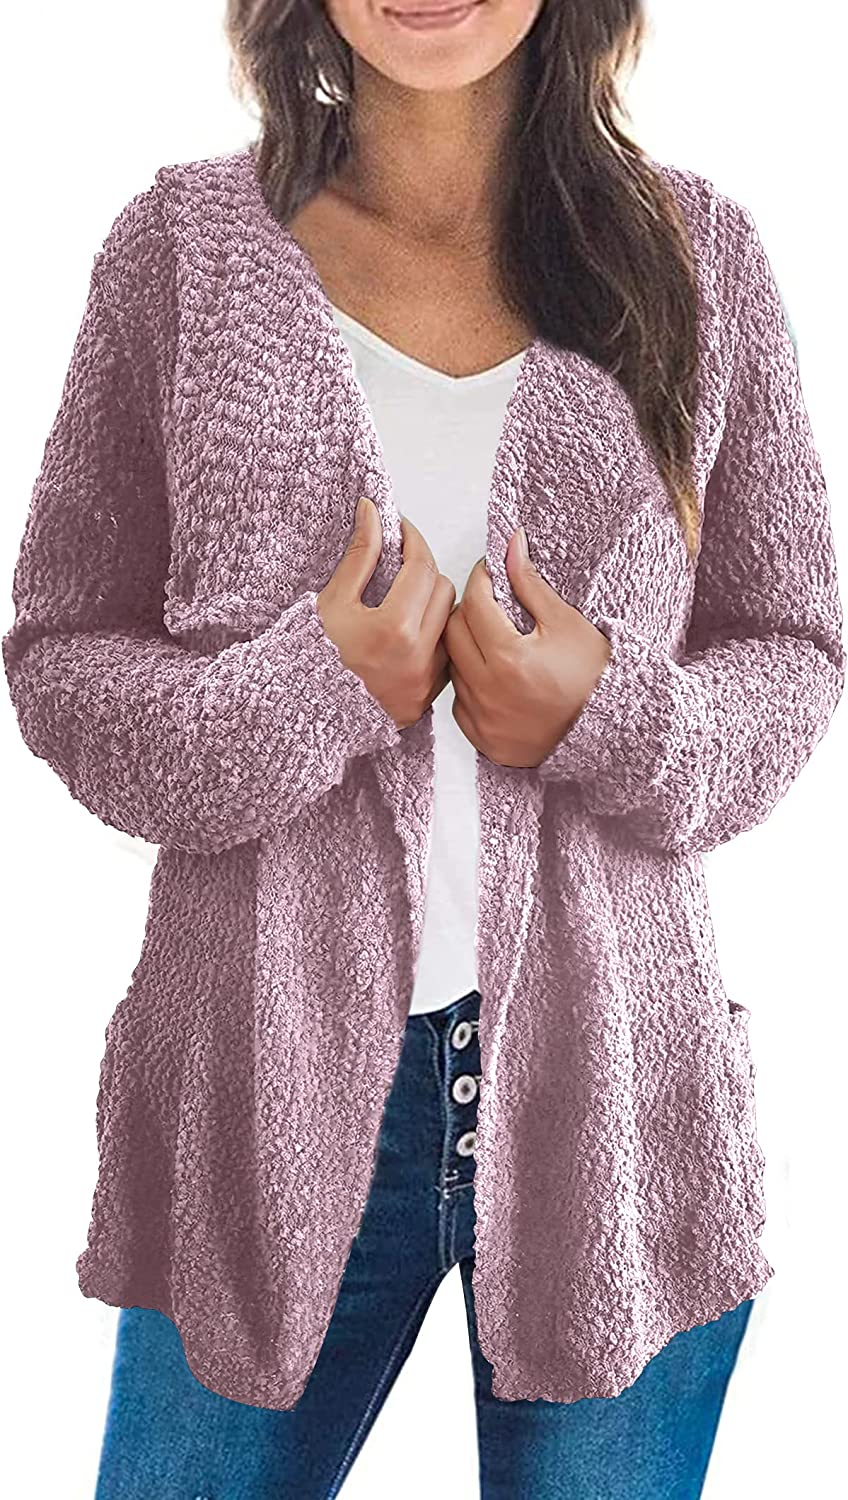 Chriselda Cardigan Sweaters for Women Loose Casual Long Sleeved Open Front Outerwear with Pockets